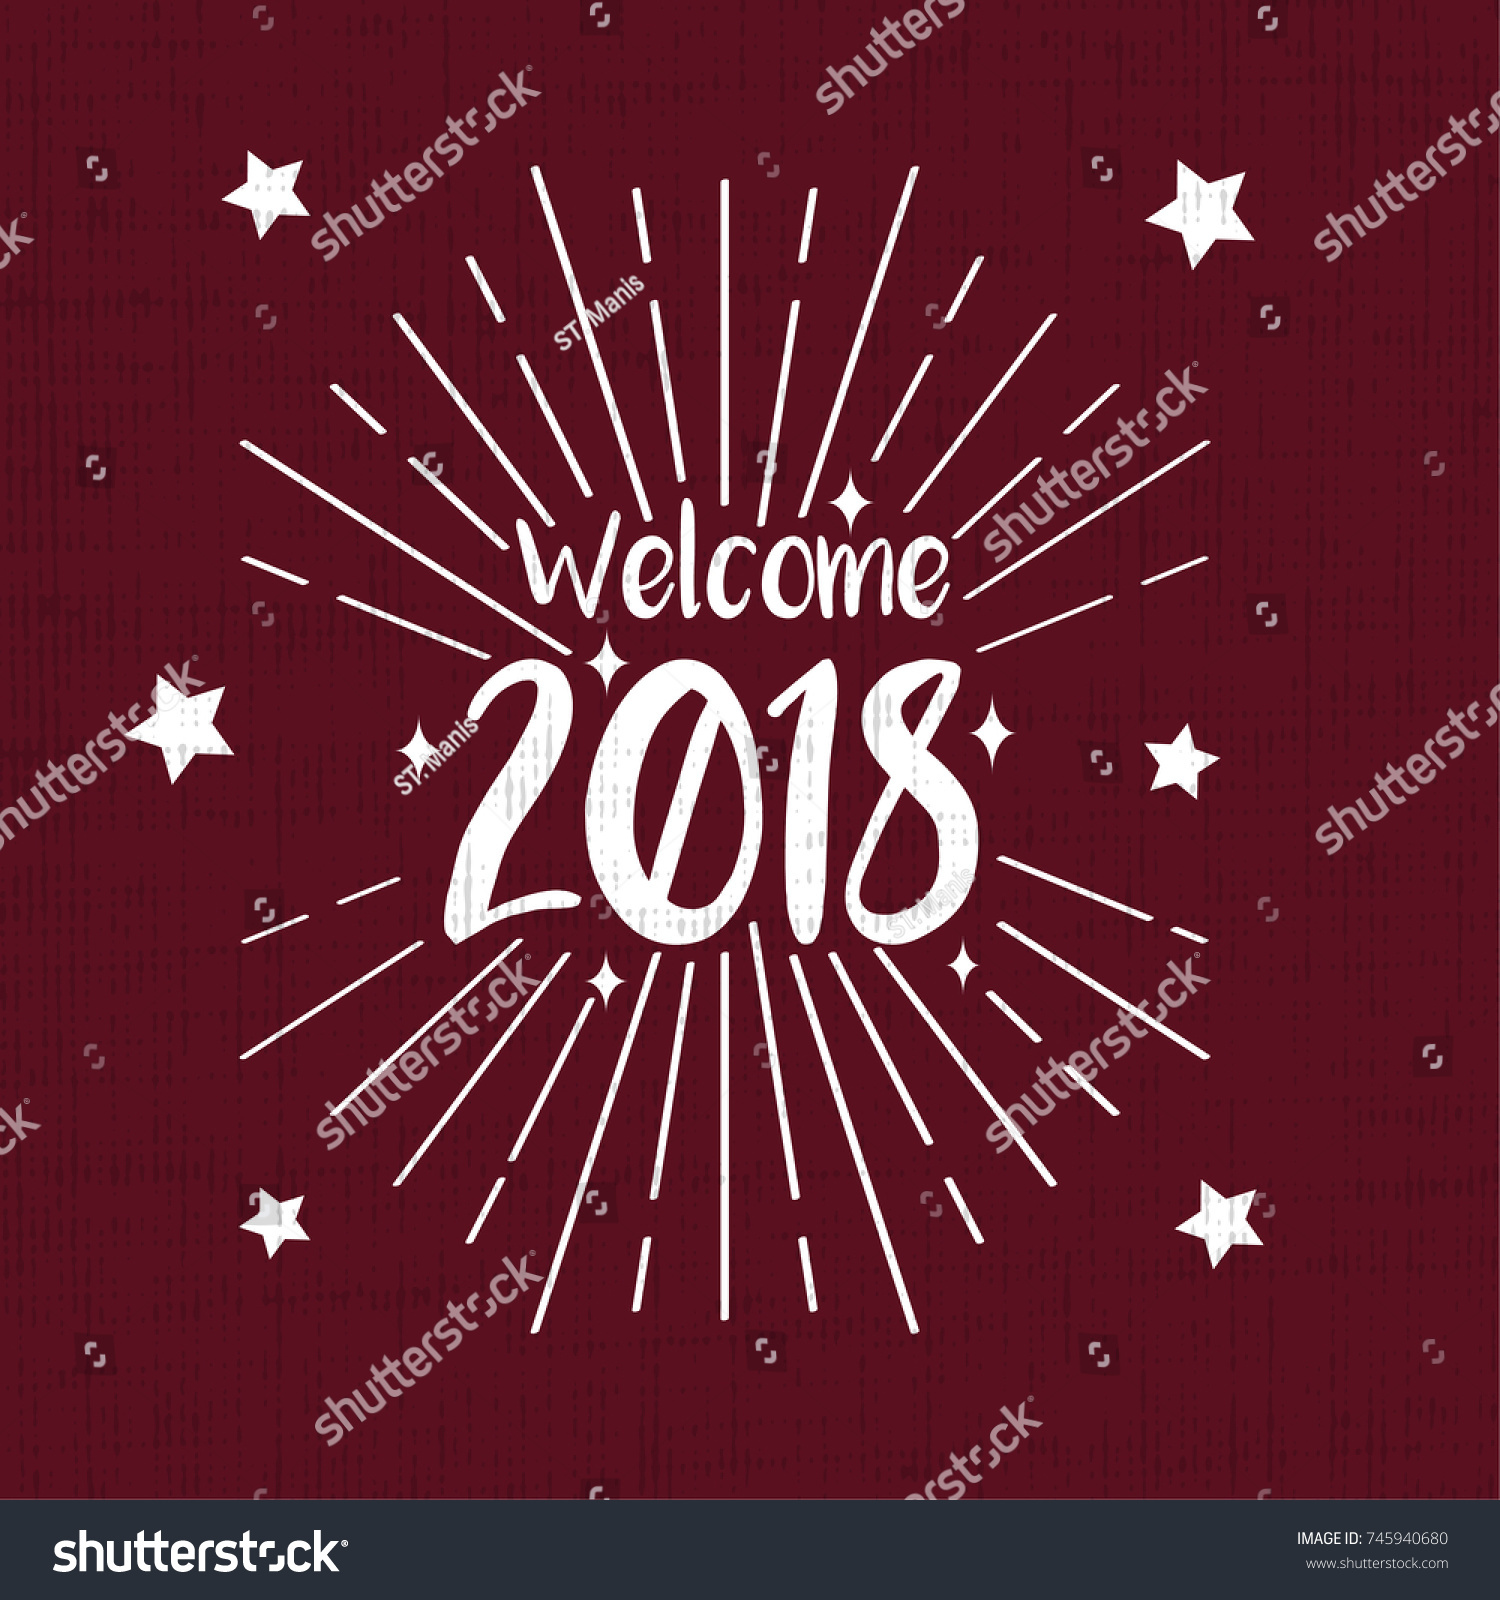 Welcome 2018 greeting card retro vintage stock vector 745940680 welcome 2018 greeting card with retro vintage red background kristyandbryce Choice Image